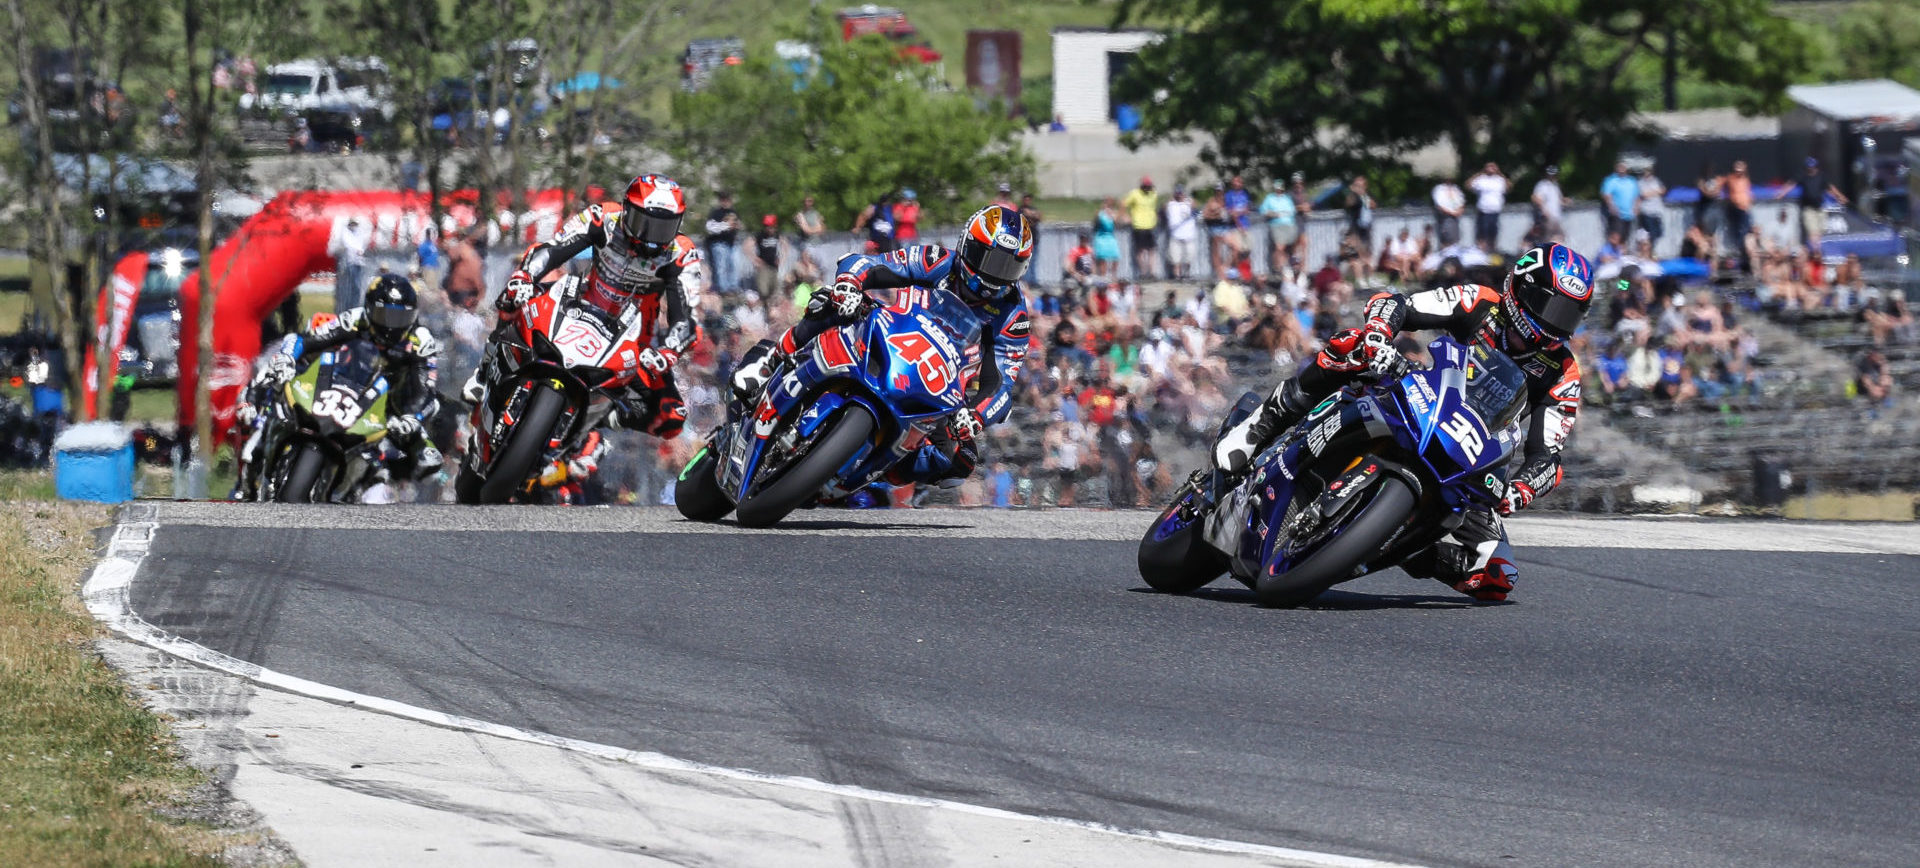 Jake Gagne (32) leads Cameron Petersen (45), Loris Baz (76) and Kyle Wyman (33) early in MotoAmerica Superbike Race Two. Photo by Brian J. Nelson.